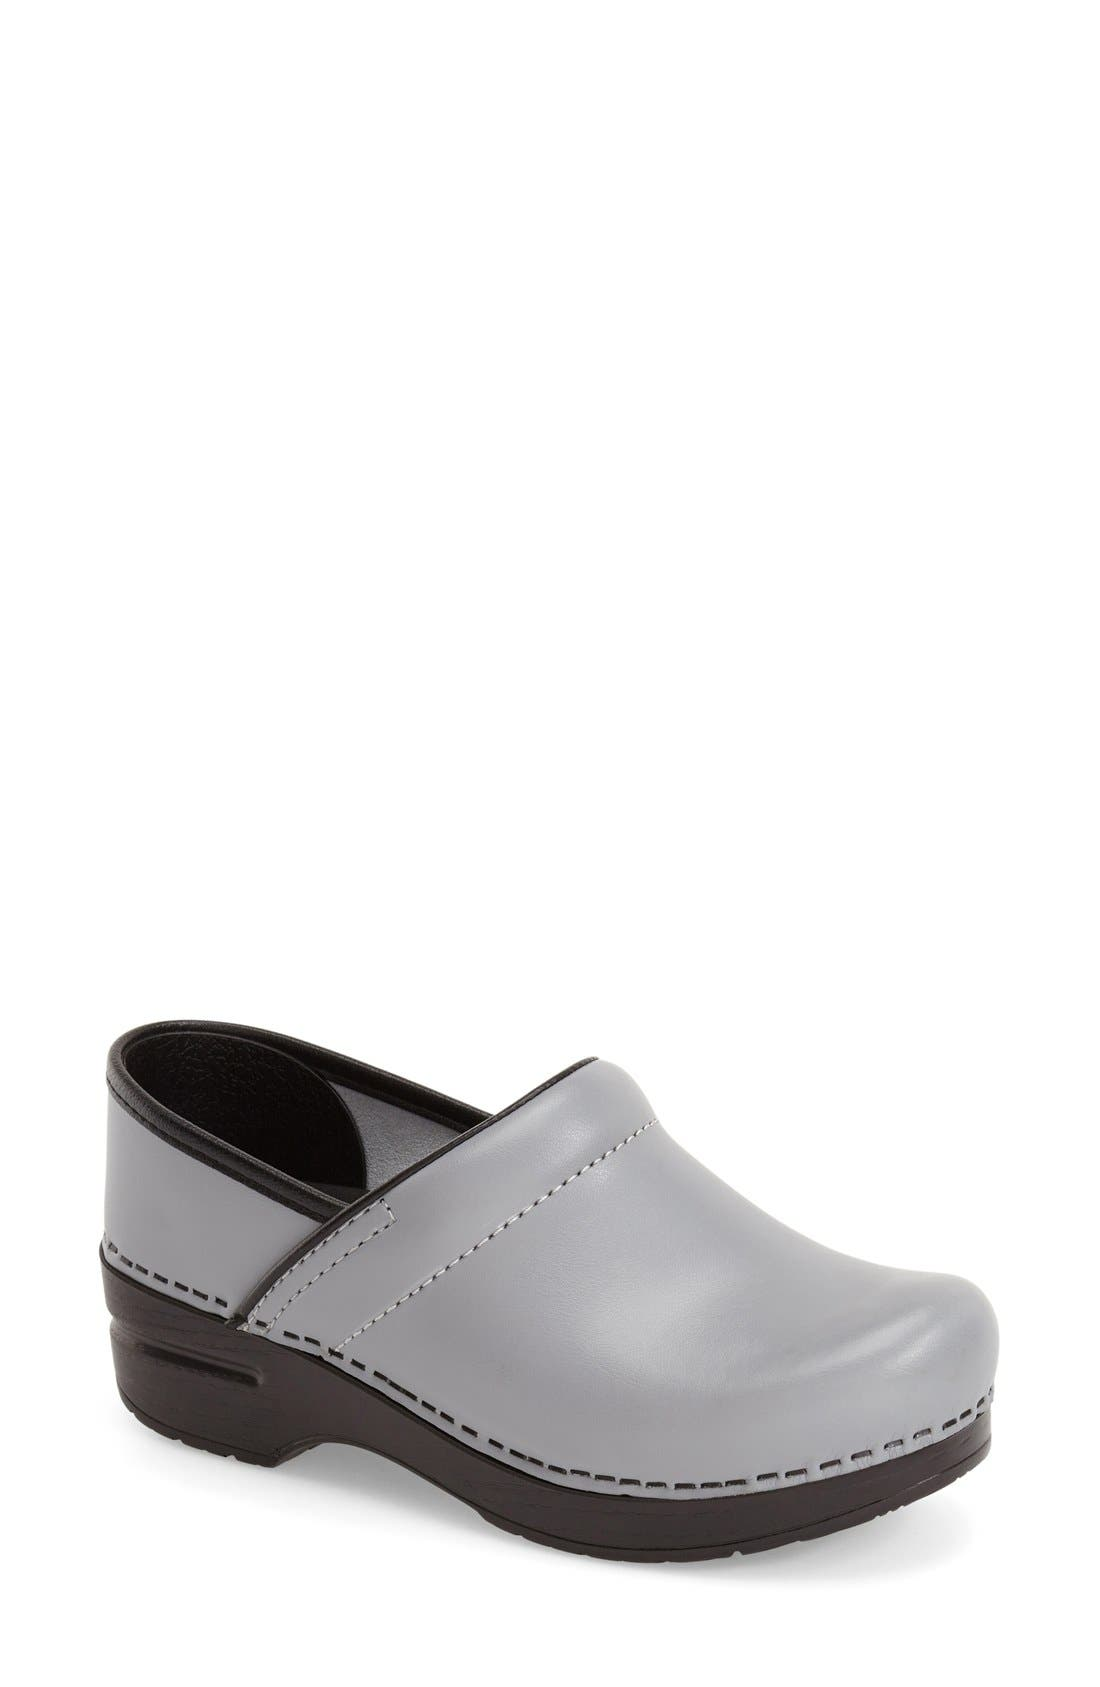 Alternate Image 1 Selected - Dansko 'Pro' Clog (Women)